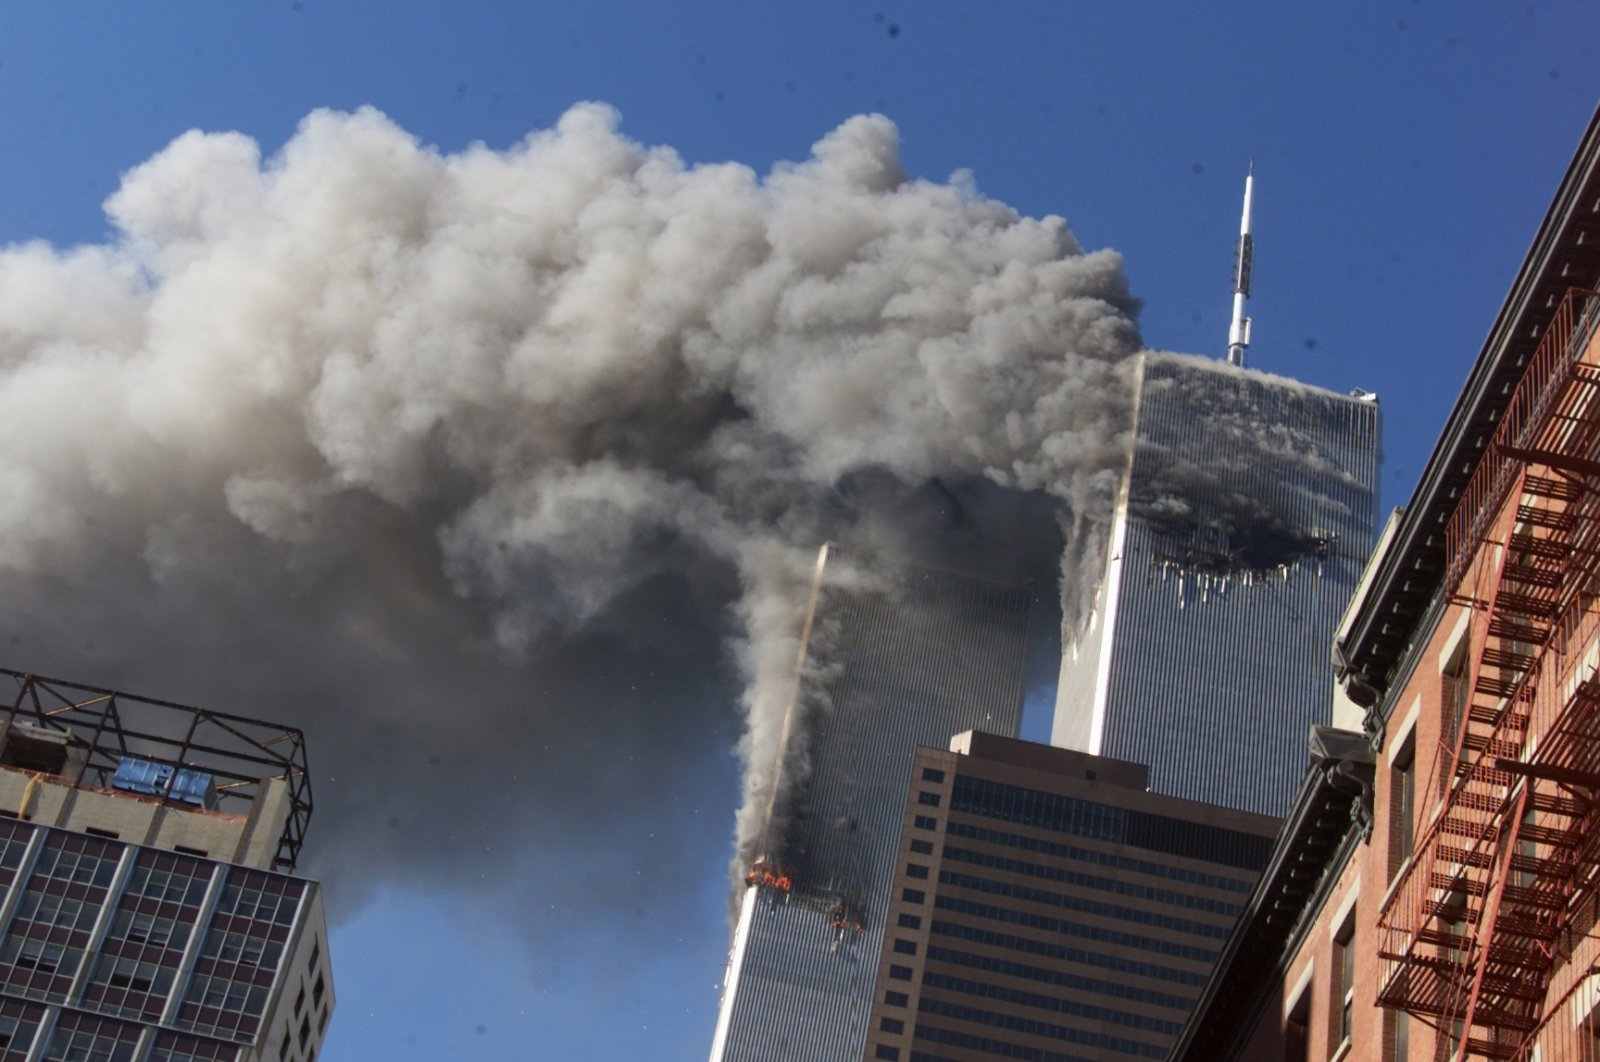 Smoke rises from the burning twin towers of the World Trade Center after hijacked planes crashed into the towers, in New York City, Sept. 11, 2001. (AP Photo)